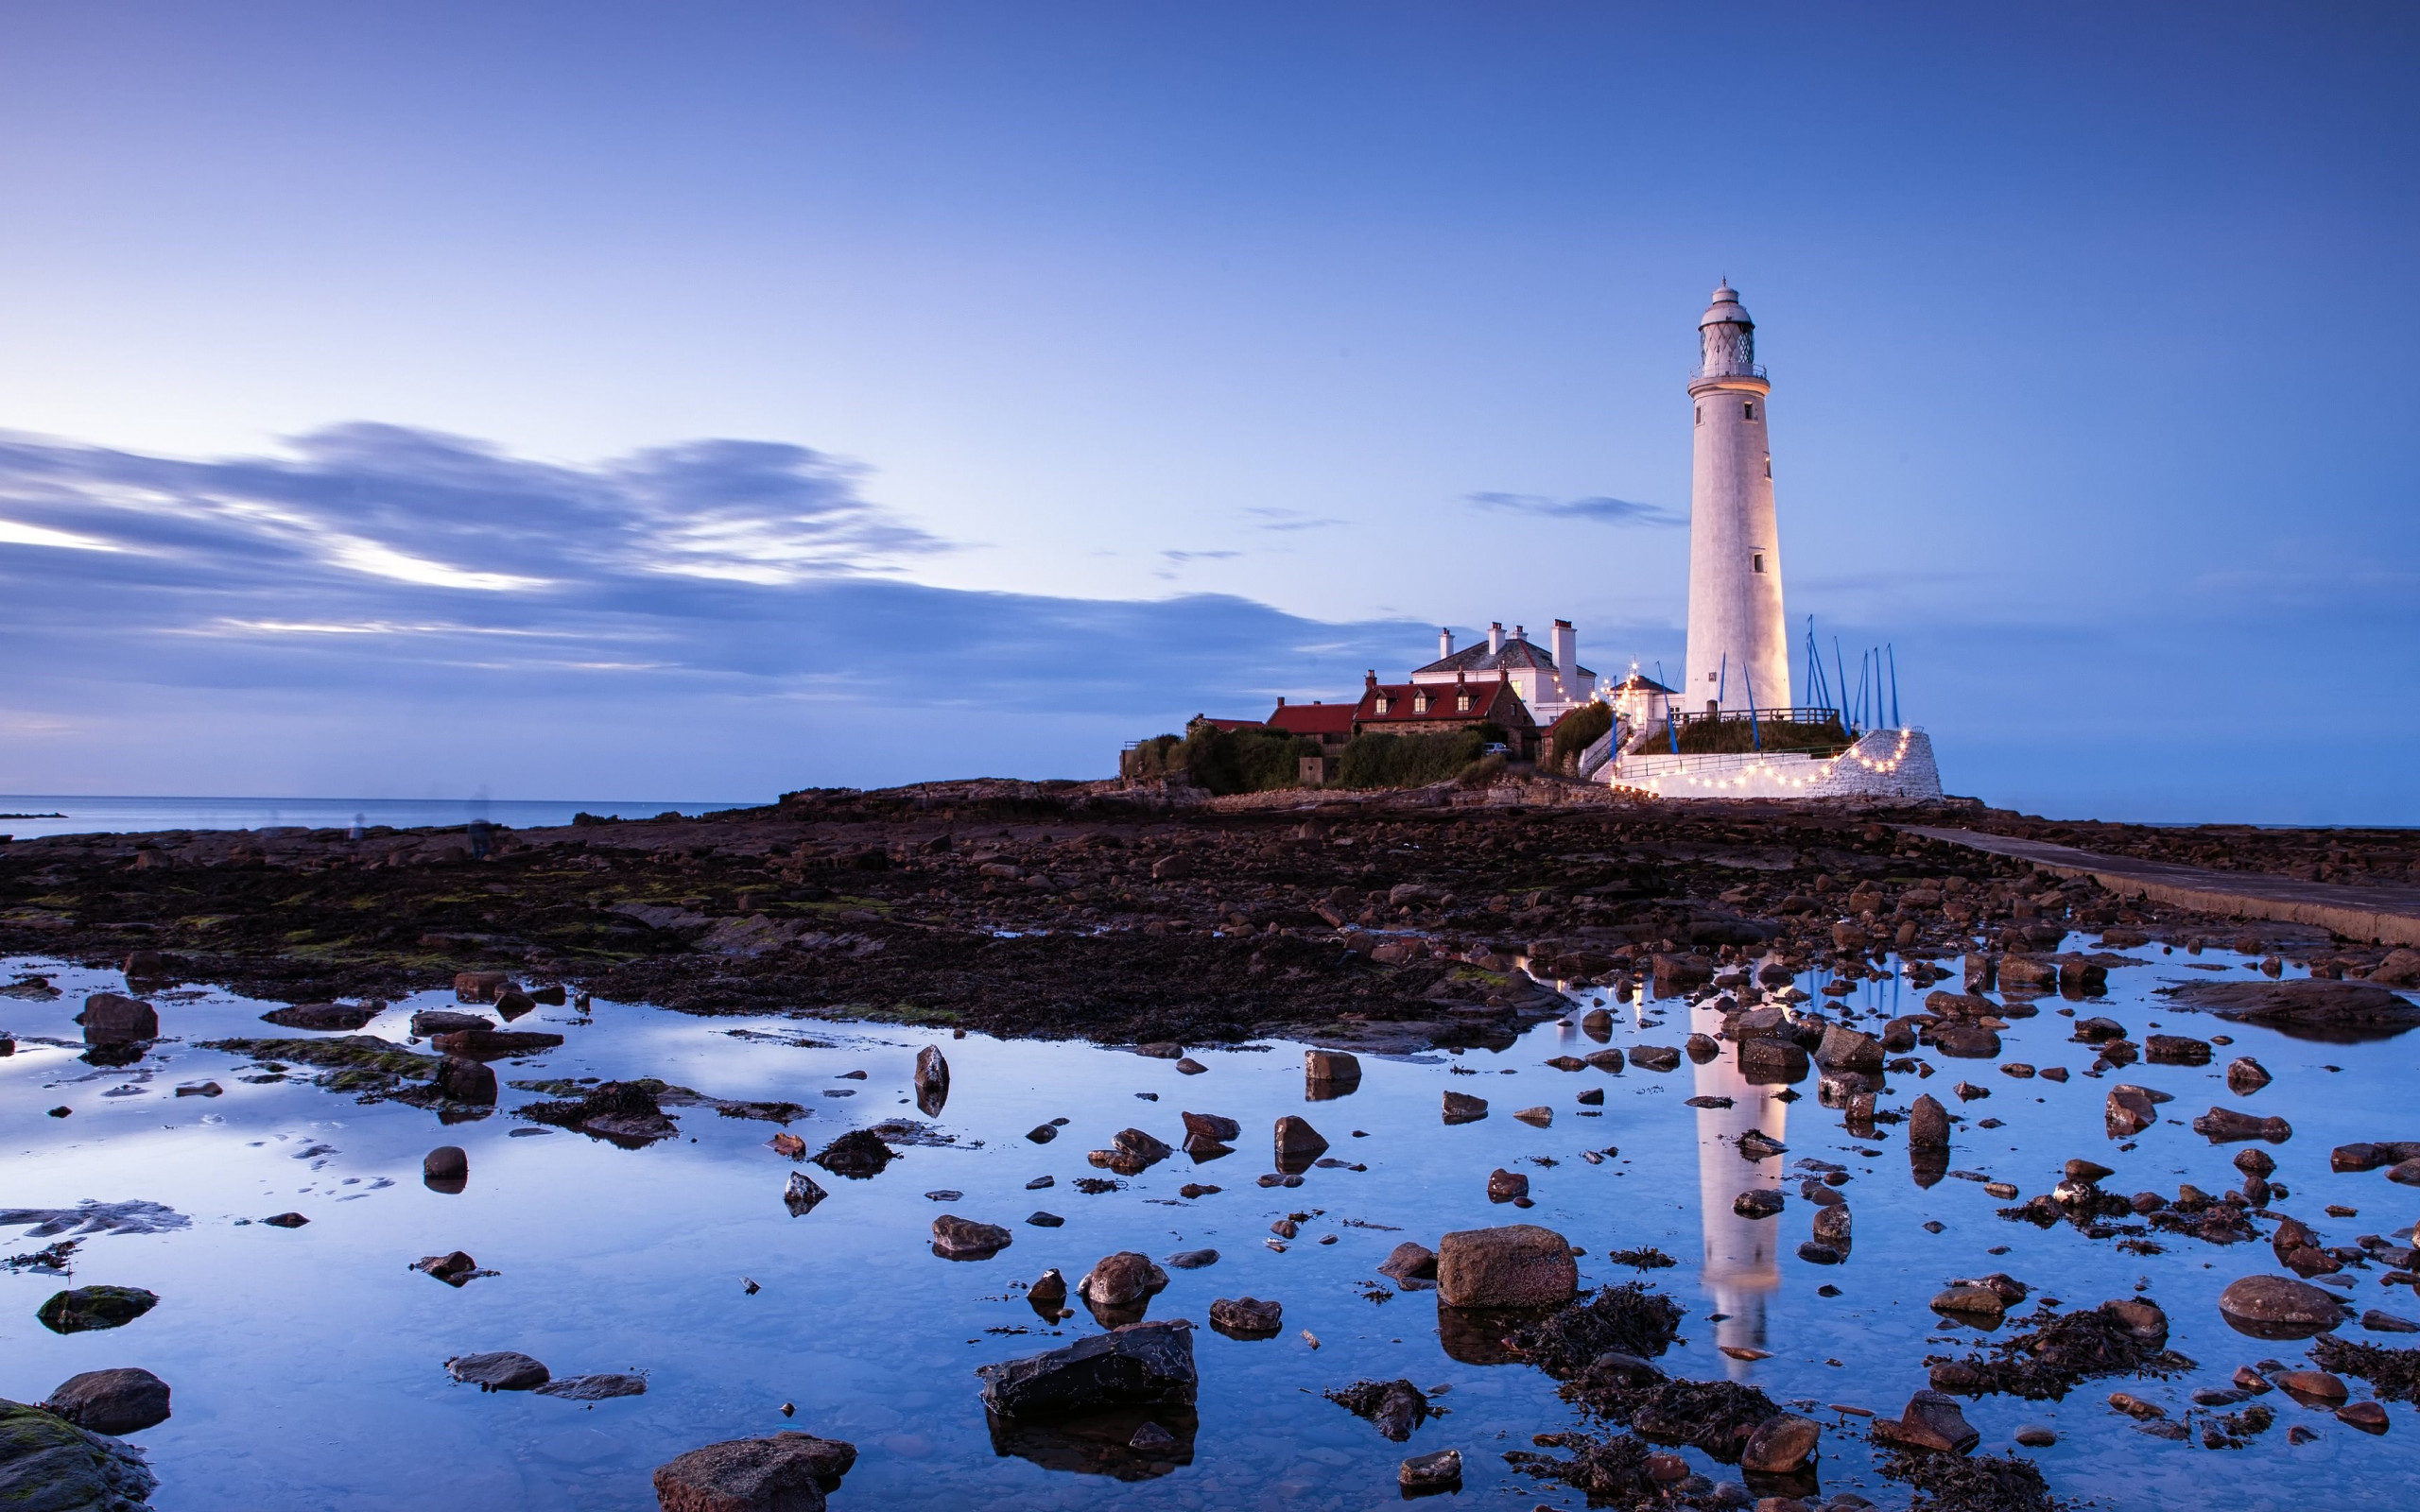 Saint Mary's lighthouse wallpaper 2560x1600